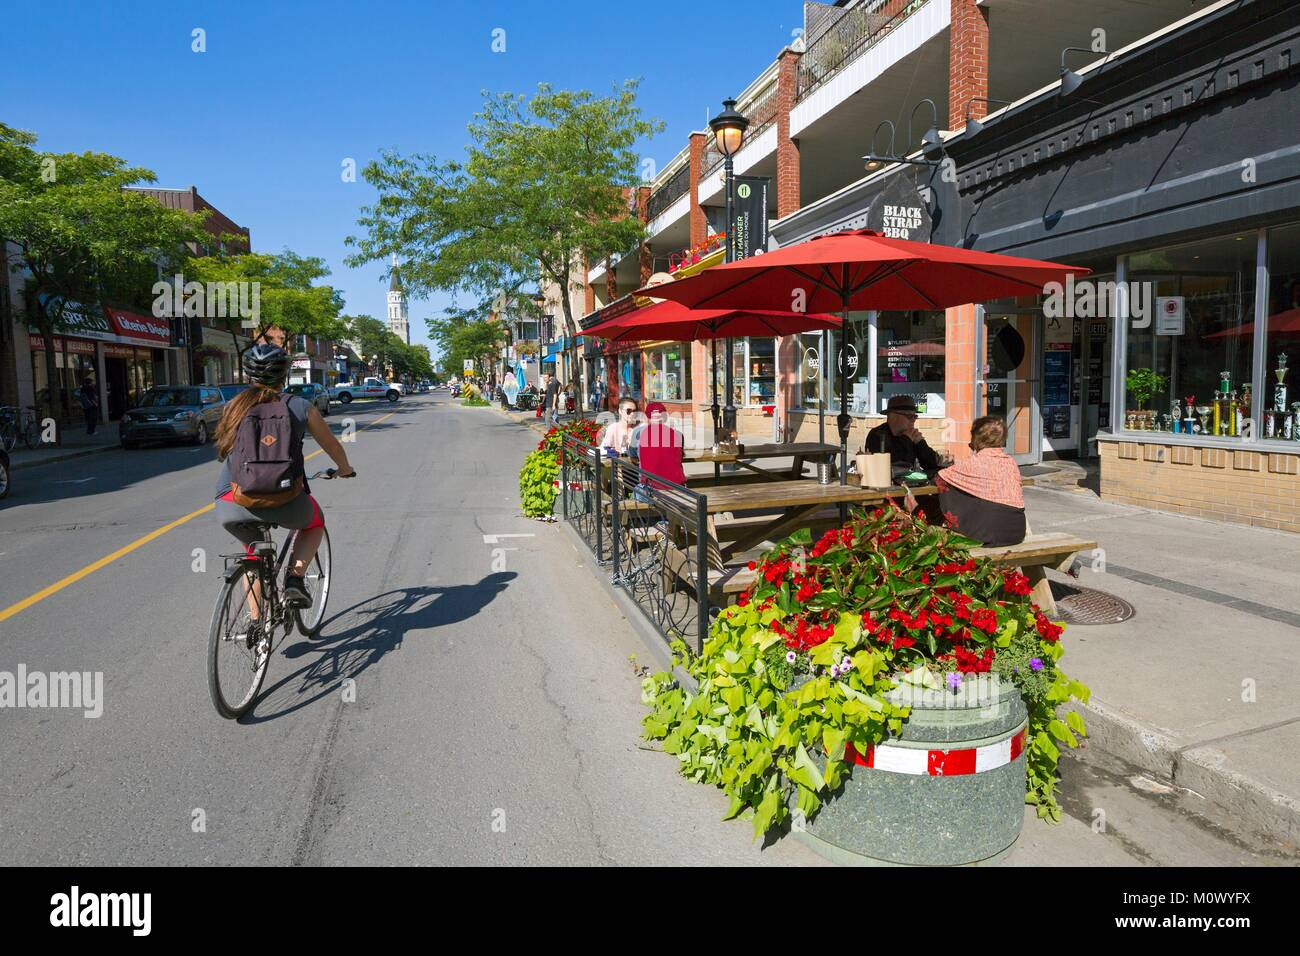 Canada,Quebec province,Montreal,the city of Verdun one of Montreal's western neighborhoods,Wellington Street,a - Stock Image